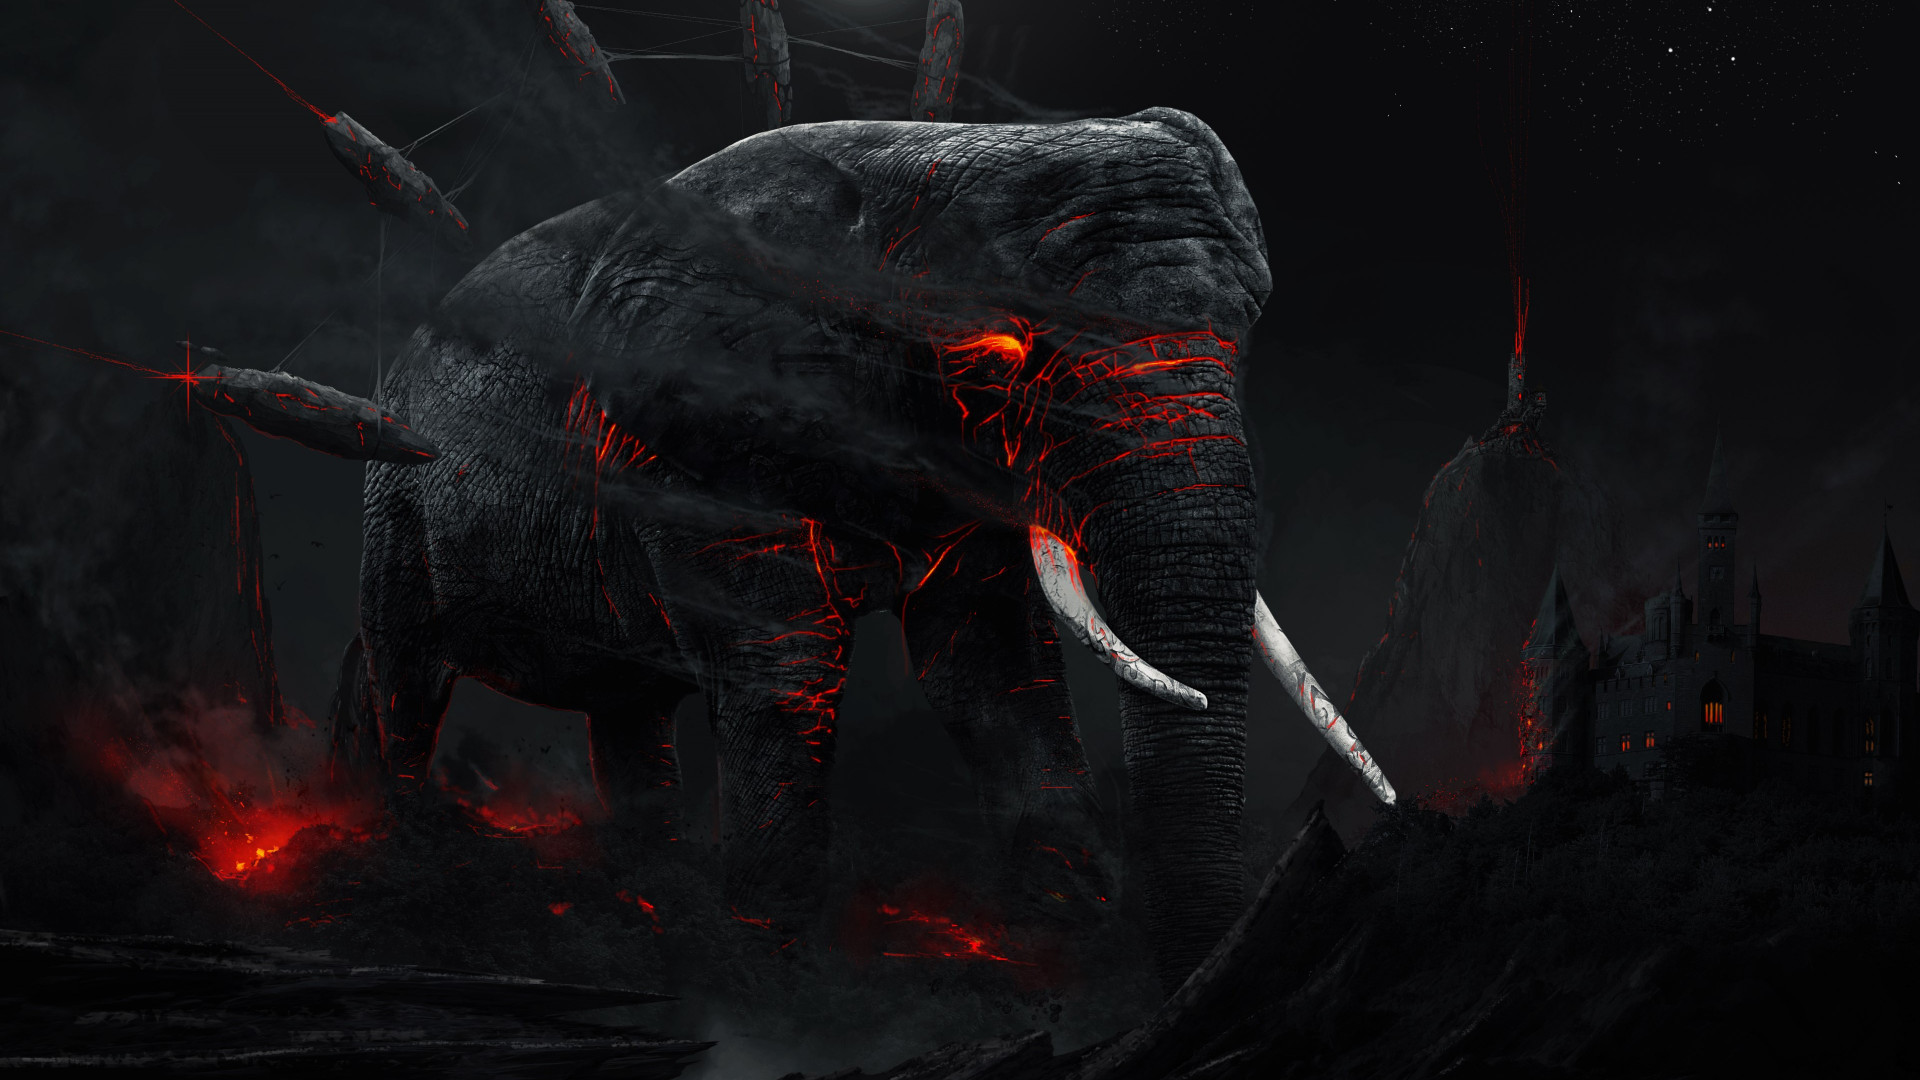 Revenge of the elephant wallpaper 1920x1080